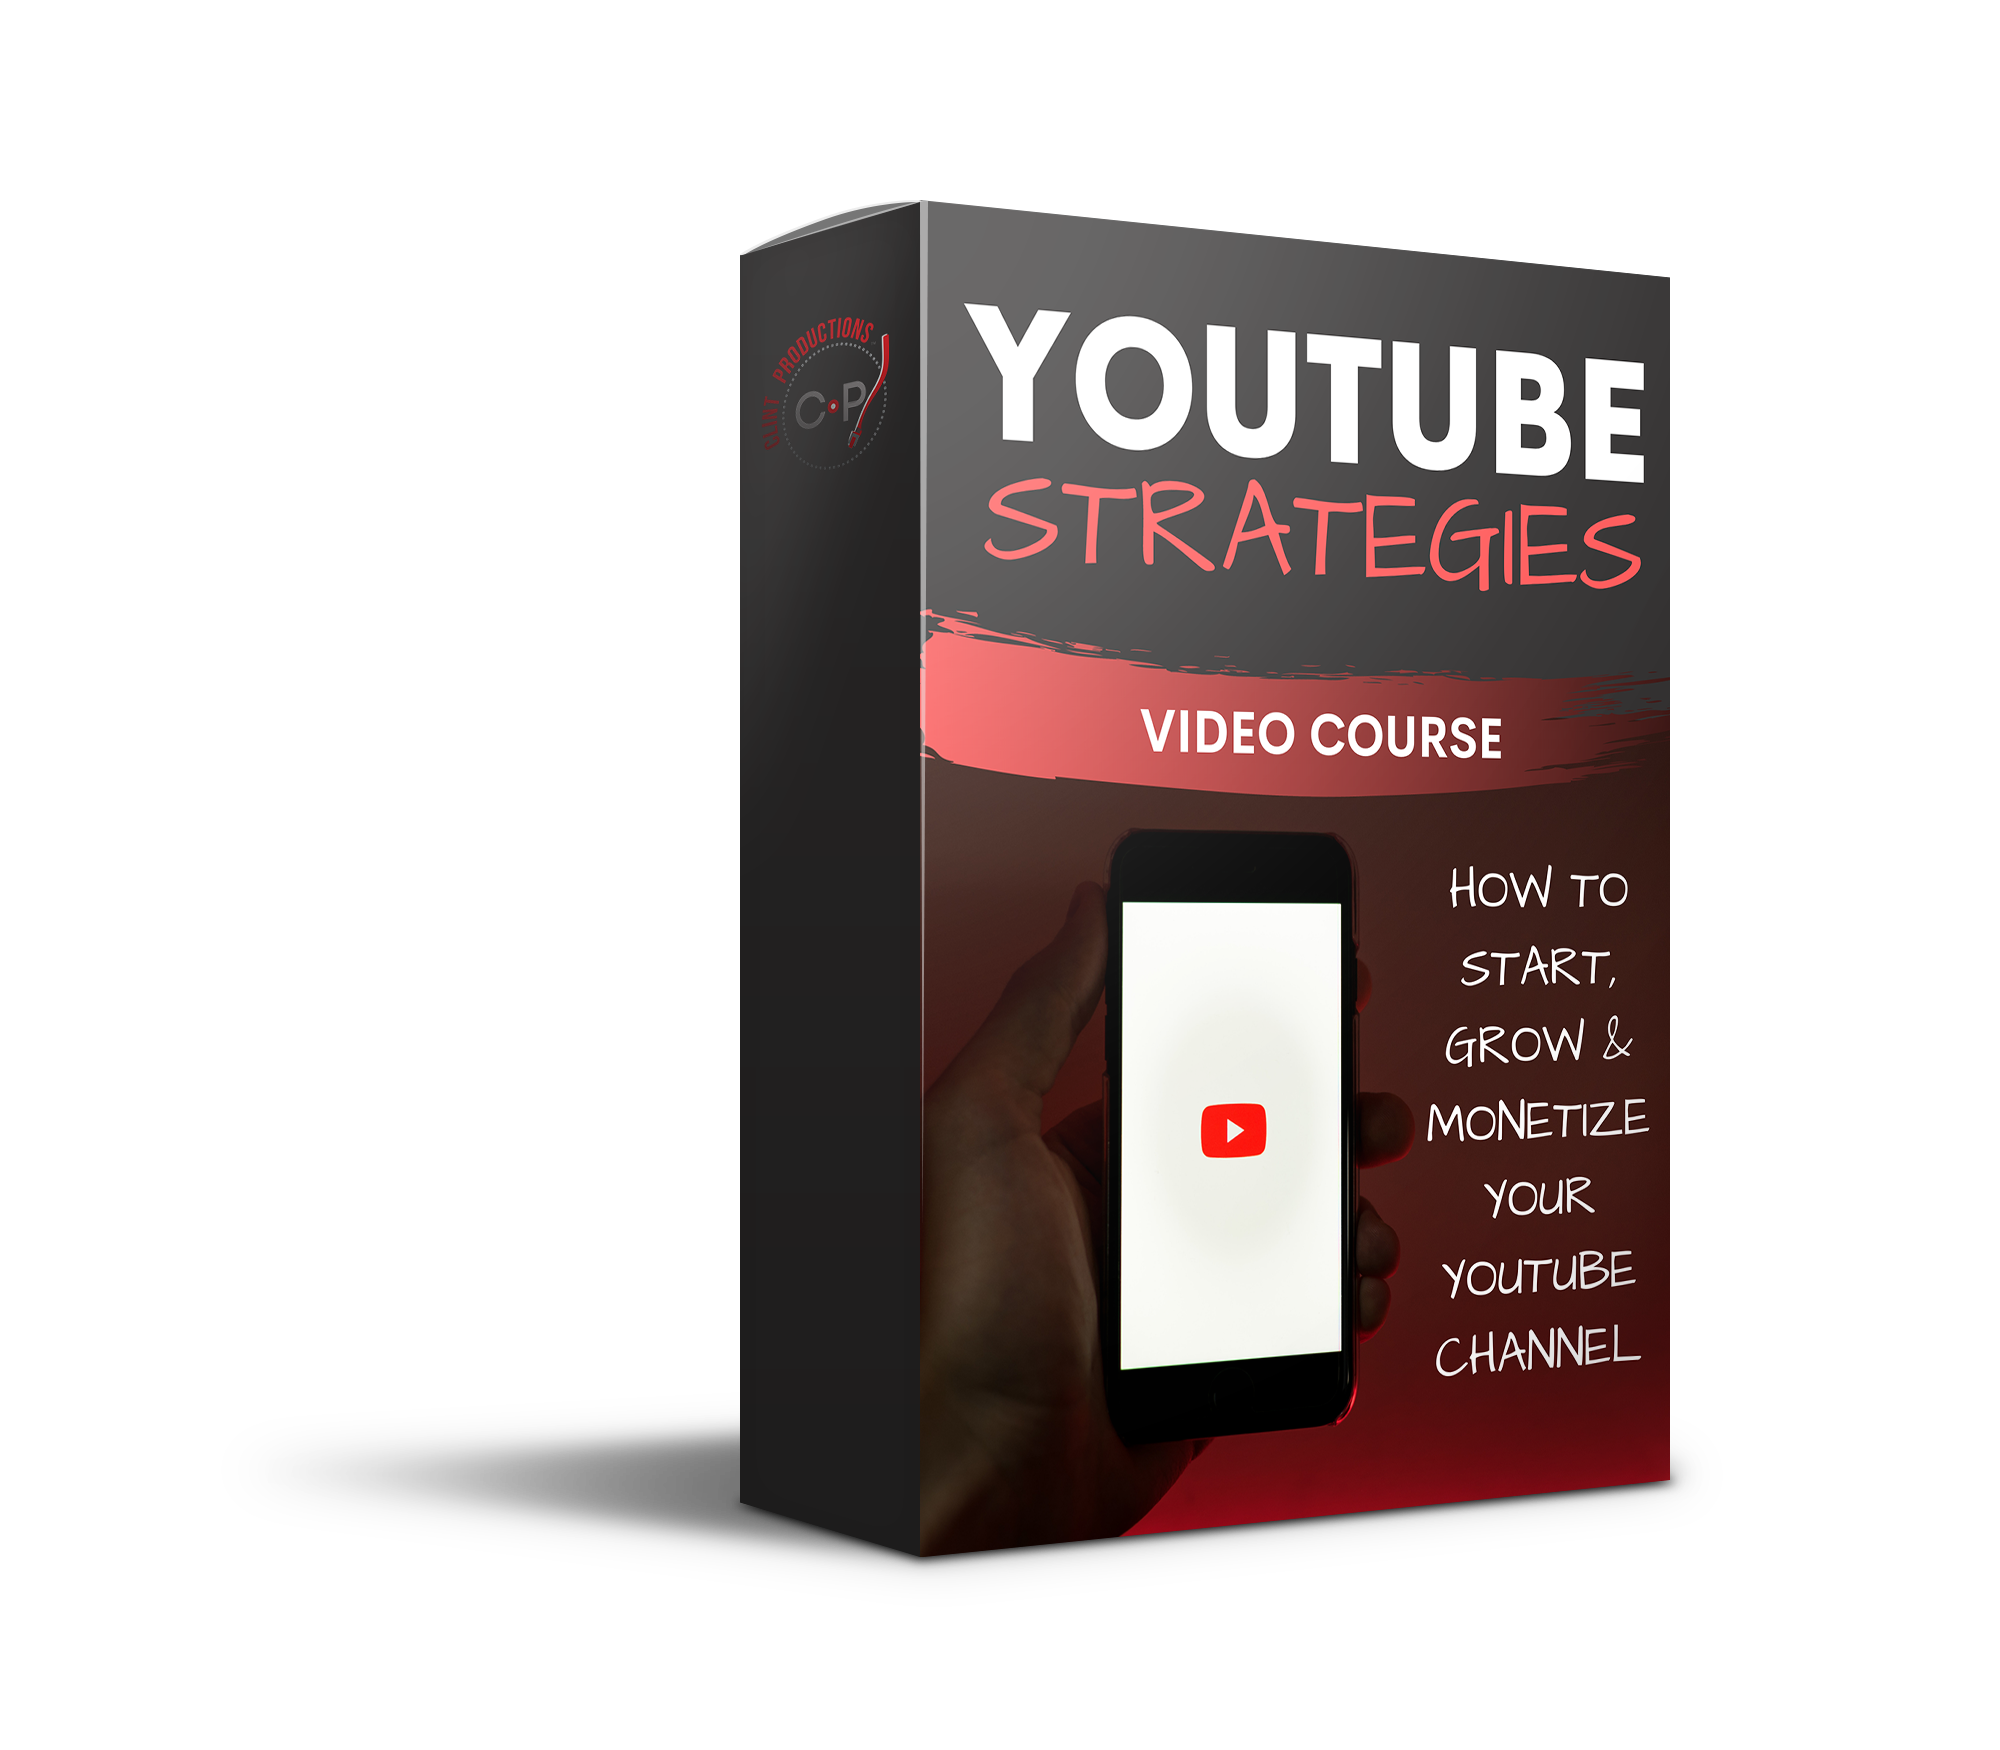 YouTube Strategies - How To Start, Grow & Monetize Your YouTube Channel